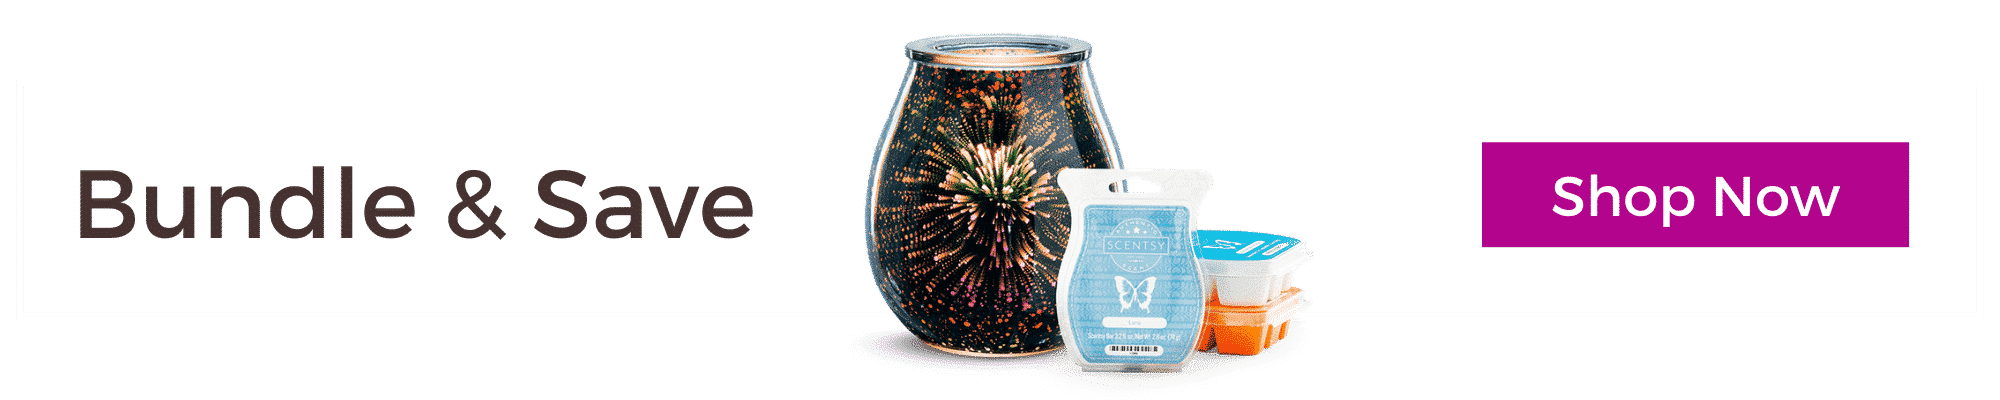 SCENTSY BUNDLE & SAVE